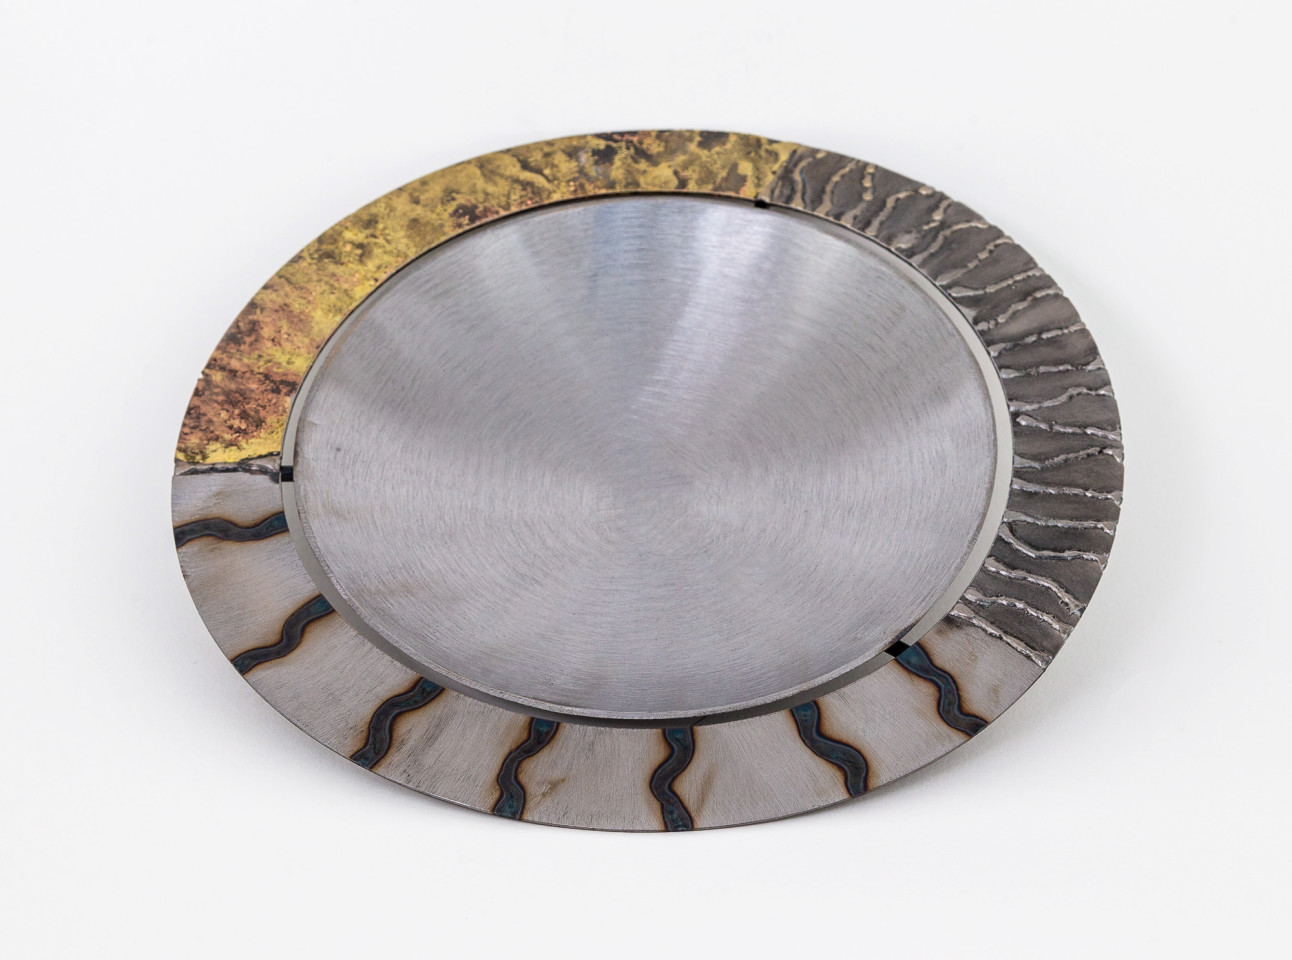 Tilly Whittle, Bowl with Gold Rim